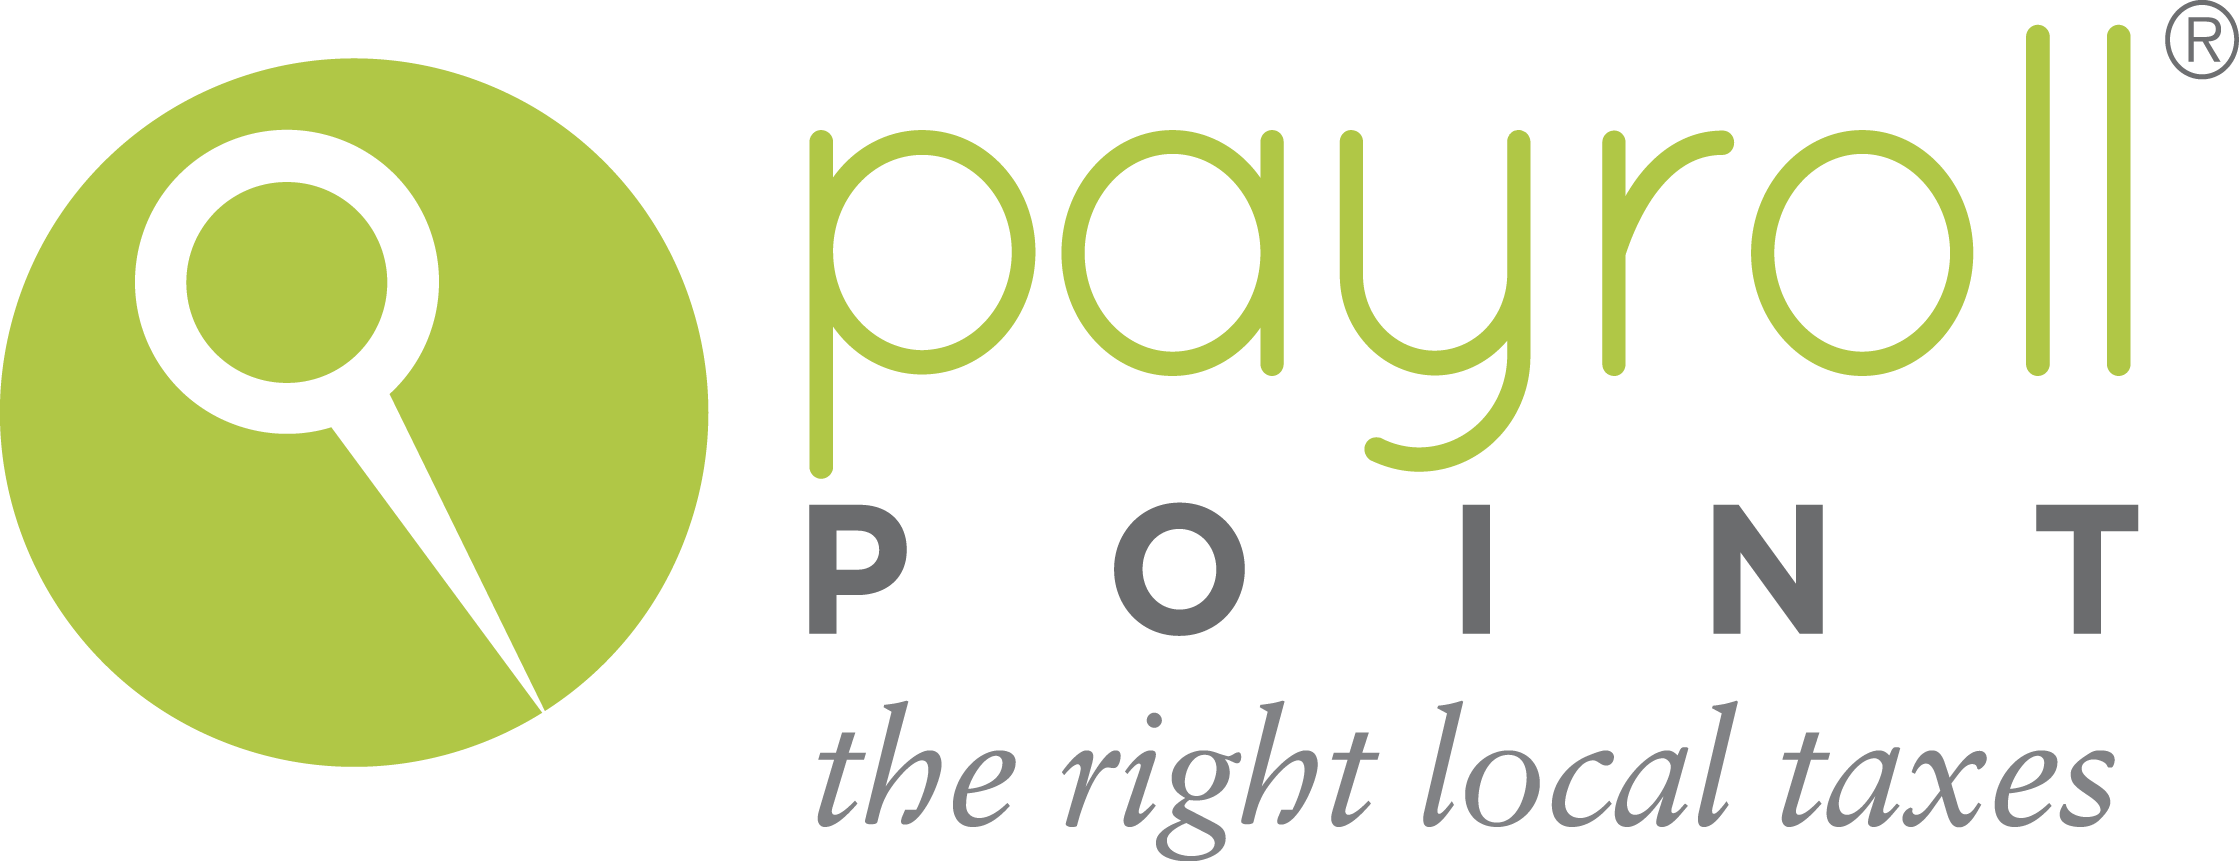 Symmetry softwares maria pickens earns fundamental payroll payroll point the right local taxes every timelocal taxes xflitez Choice Image